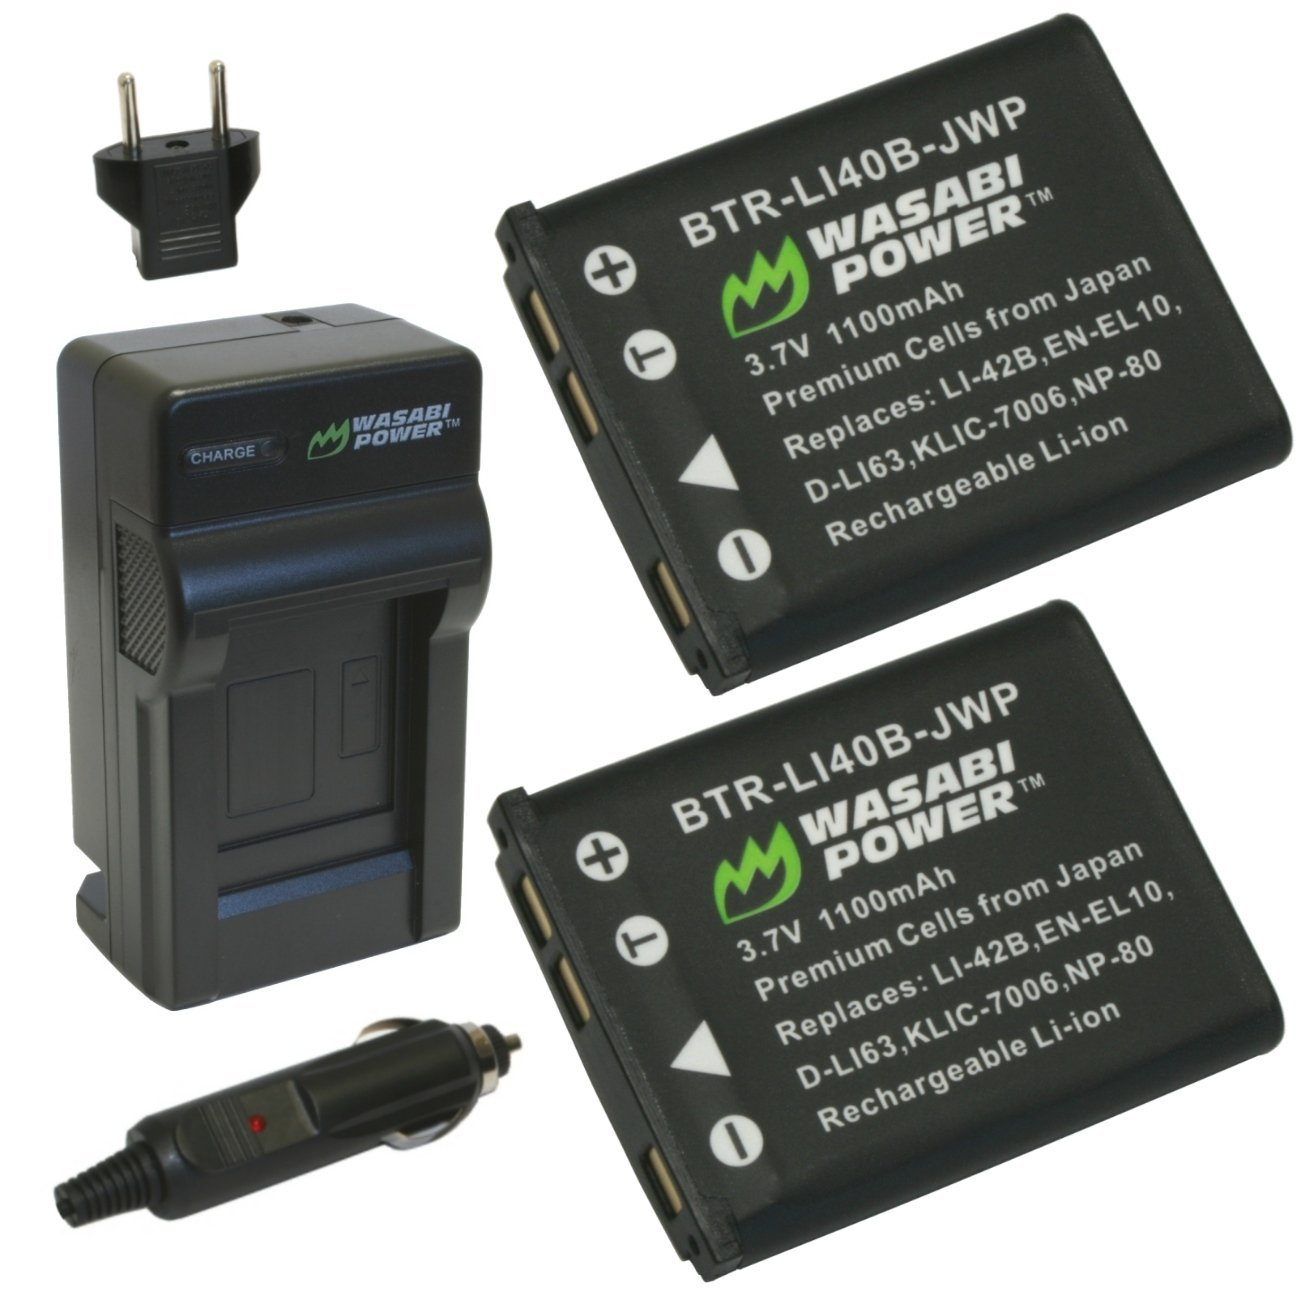 Wasabi Power Battery (2-Pack) and Charger for Fujifilm NP-45, NP-45A, NP-45B, NP-45S and Fuji FinePix J10, J12, J15, J15fd, J20, J25, J26, J27, J30, J35, J38, J40, J100, J110W, J120, J150W, J210, J250, JV100, JV105, JV150, JV155, JV160, JV200, JV205, JV250, JV255, JX200, JX205, JX250, JX255, JX280,